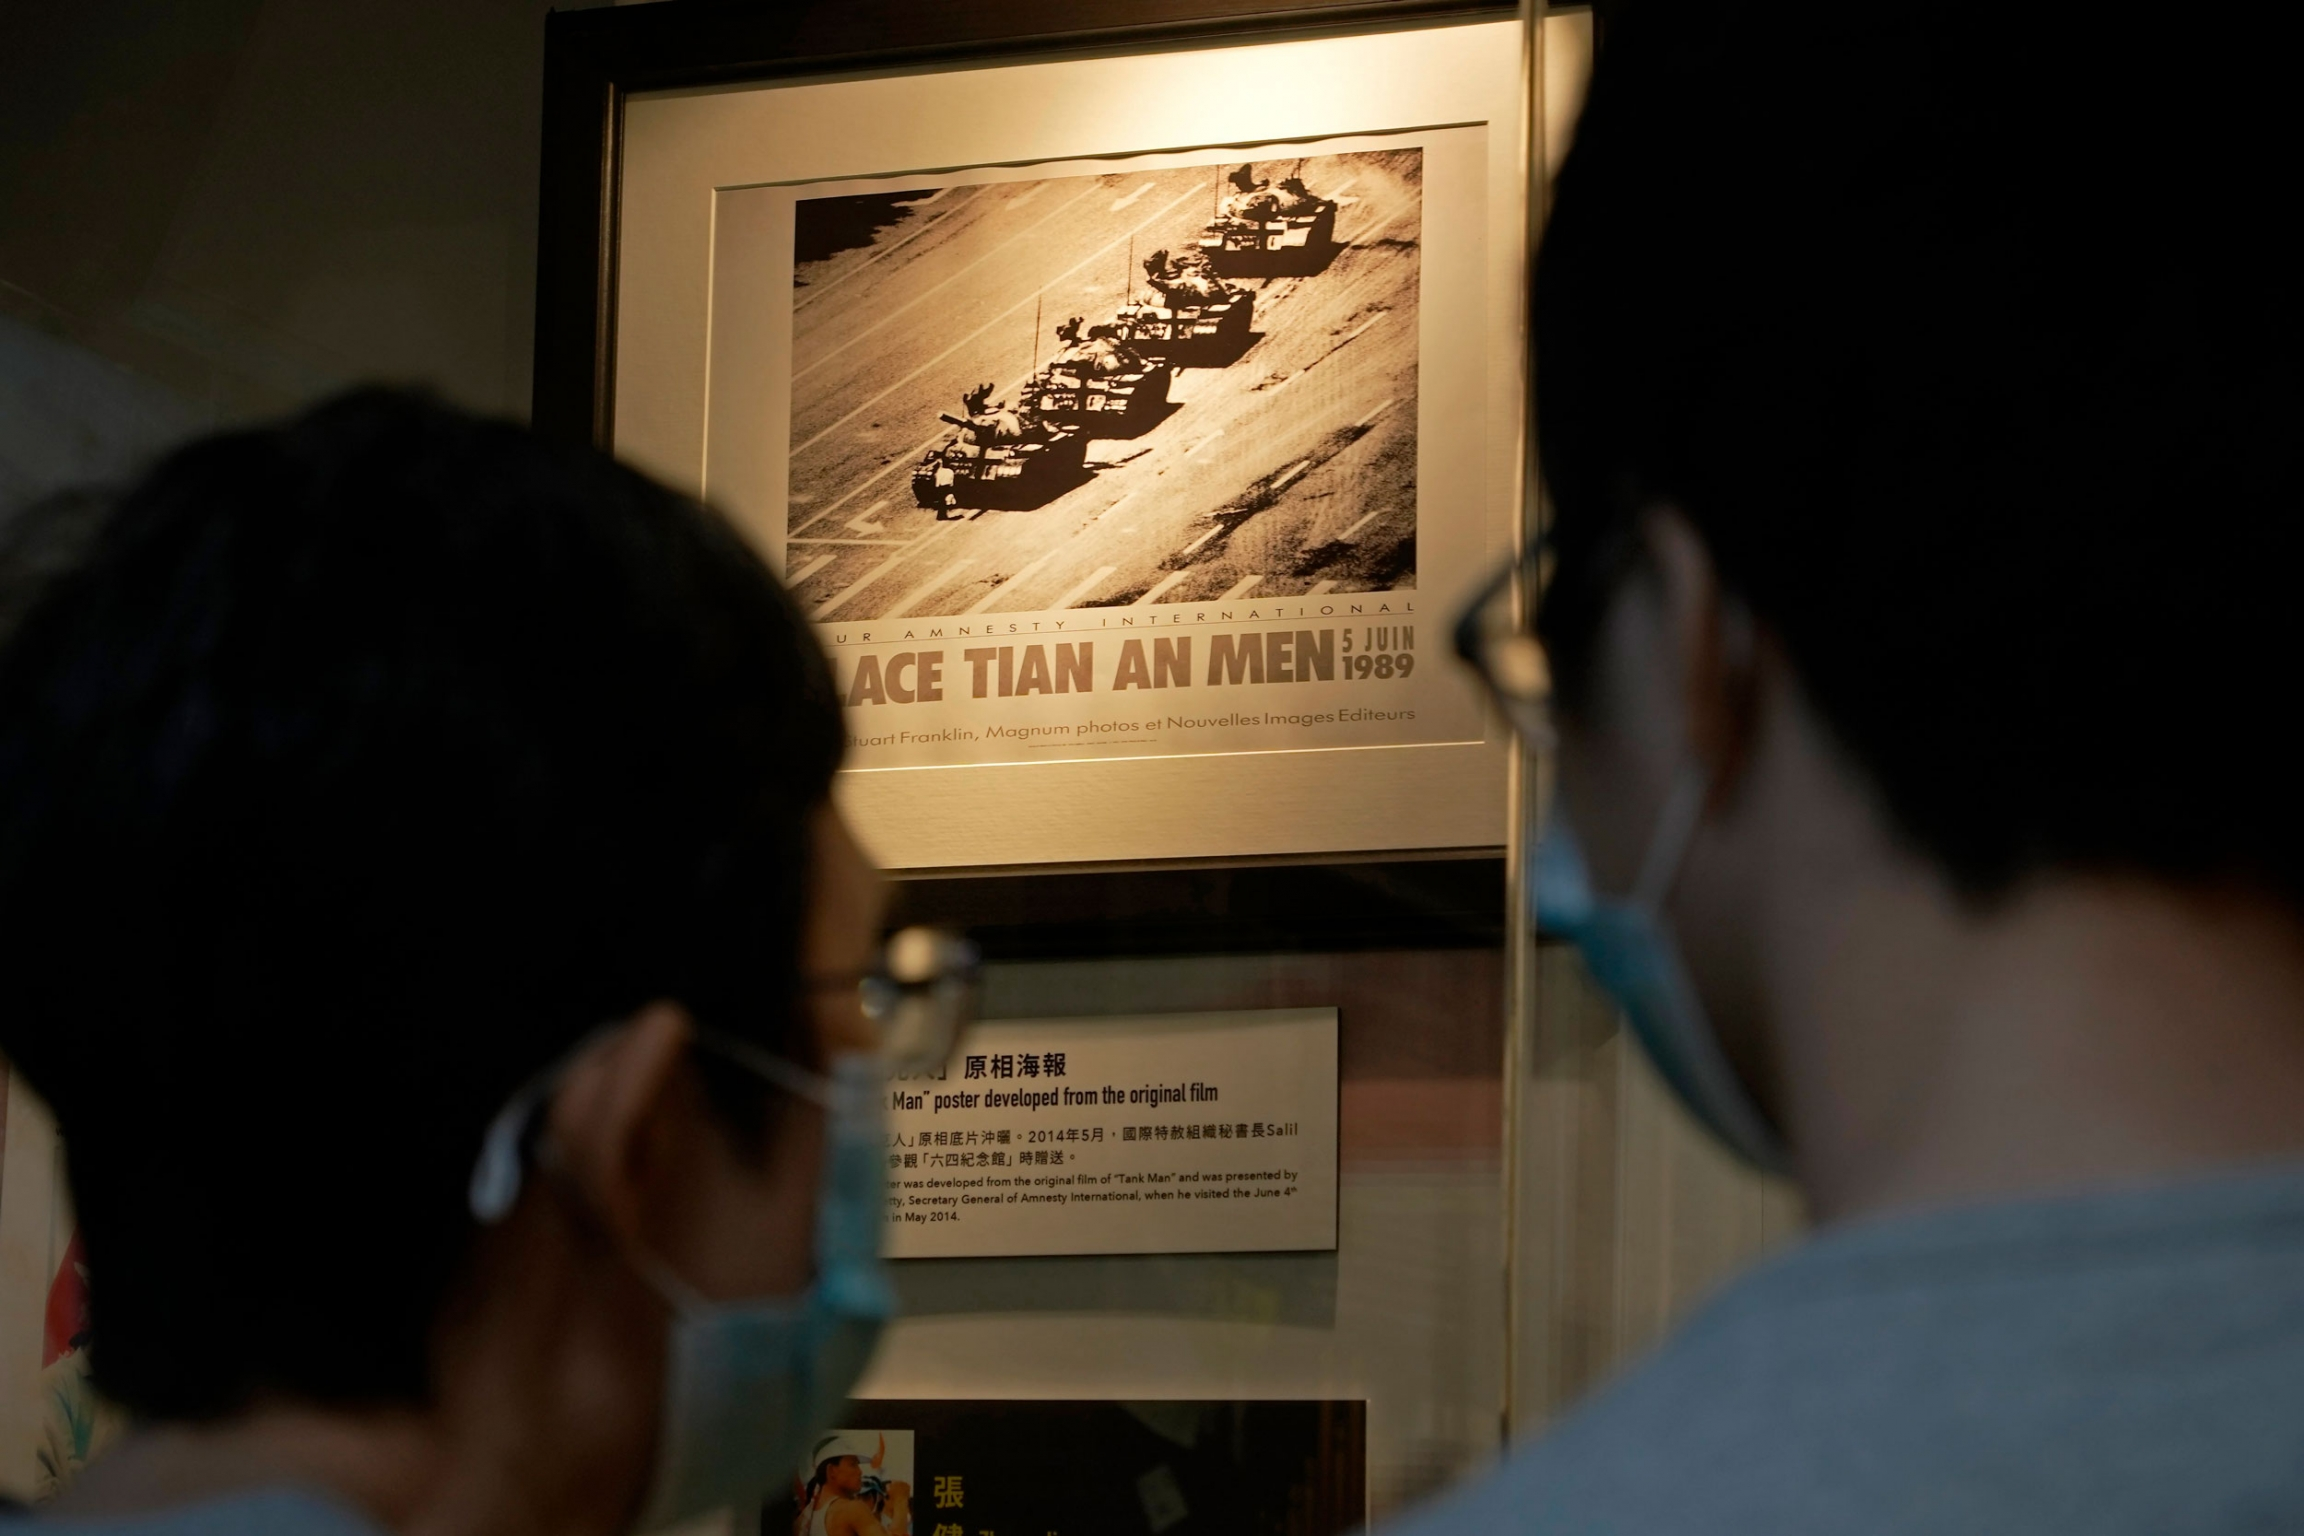 Two people are shown wearing protective face masks and looking at a photograph of a man blocking a row of four tanks.